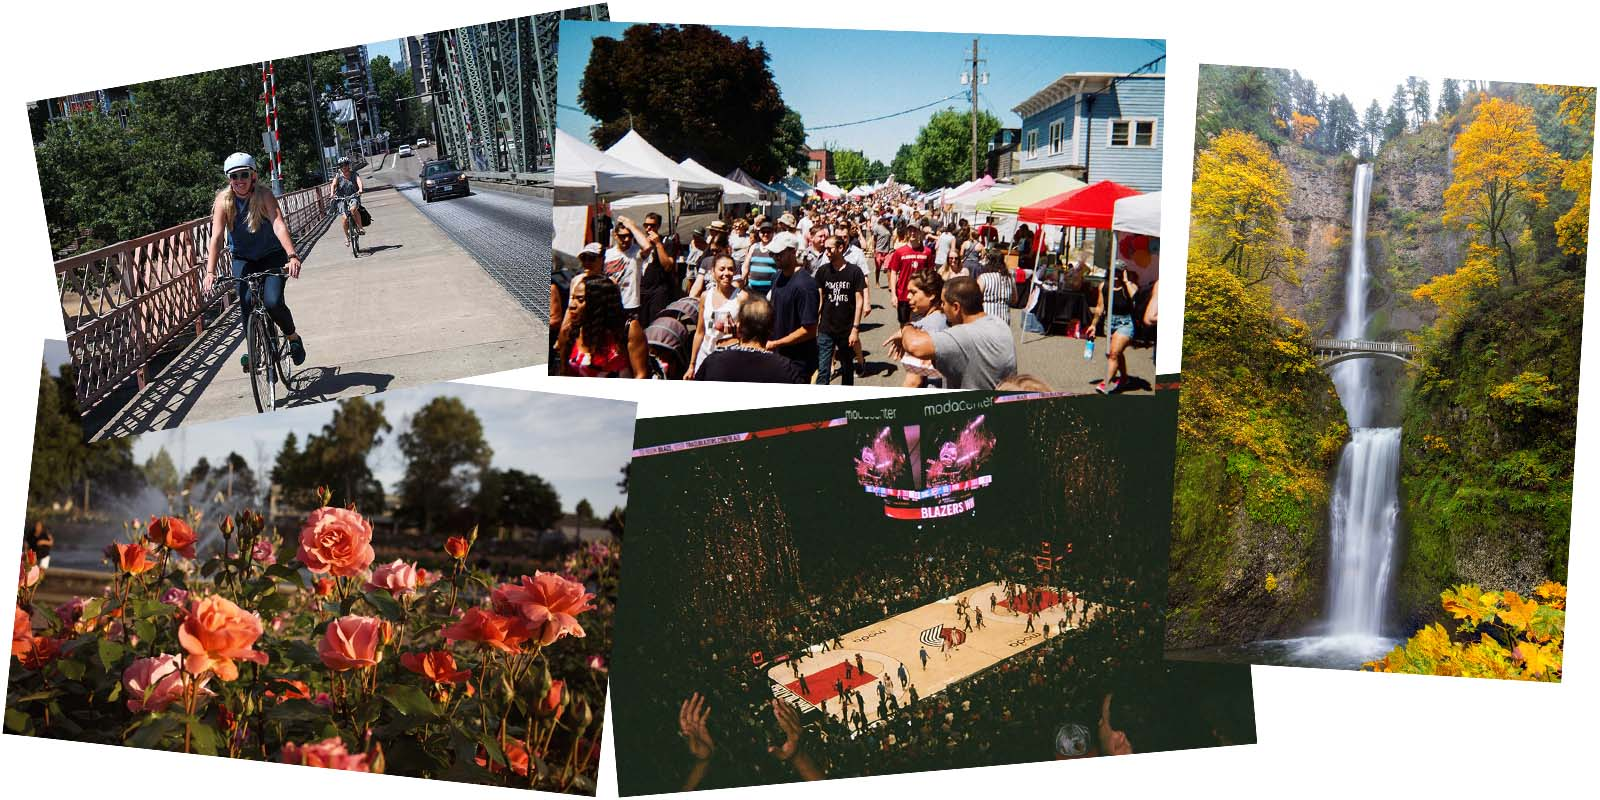 A photo collage of Portland Oregon including bicyclists, street fairs, a Portland Trail Blazers basketball game, Peninsula Park Rose Garden, and Multnomah Falls